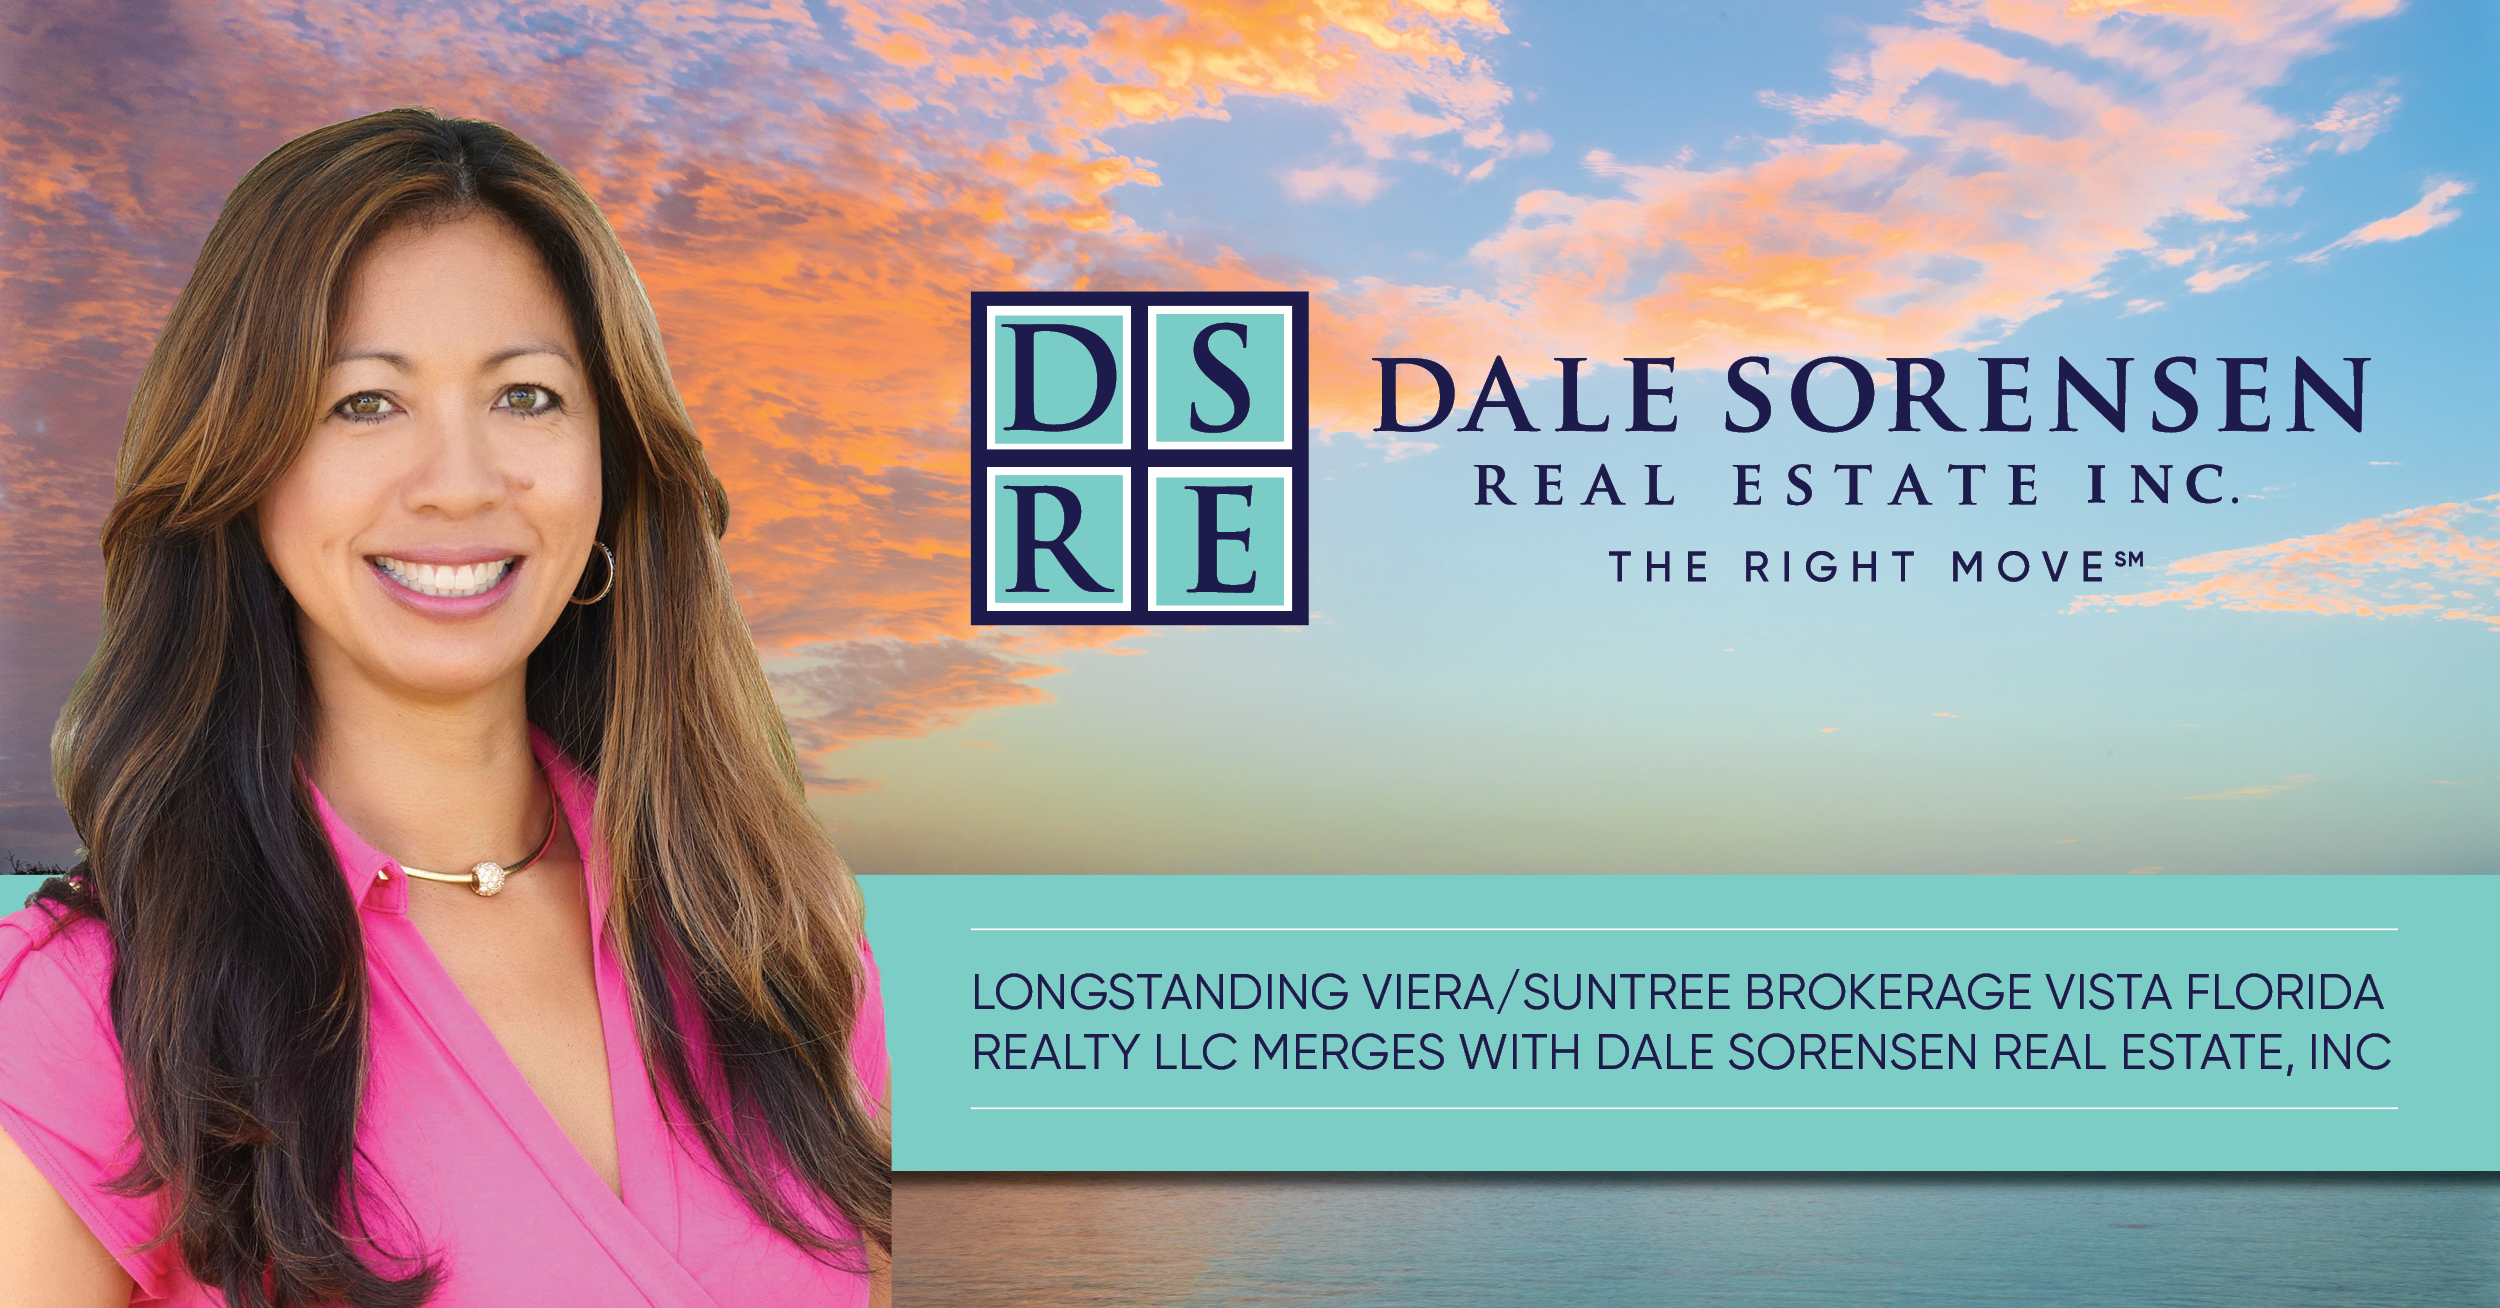 Longstanding Viera/Suntree brokerage Vista Florida Realty LLC merges with Dale Sorensen Real Estate, Inc